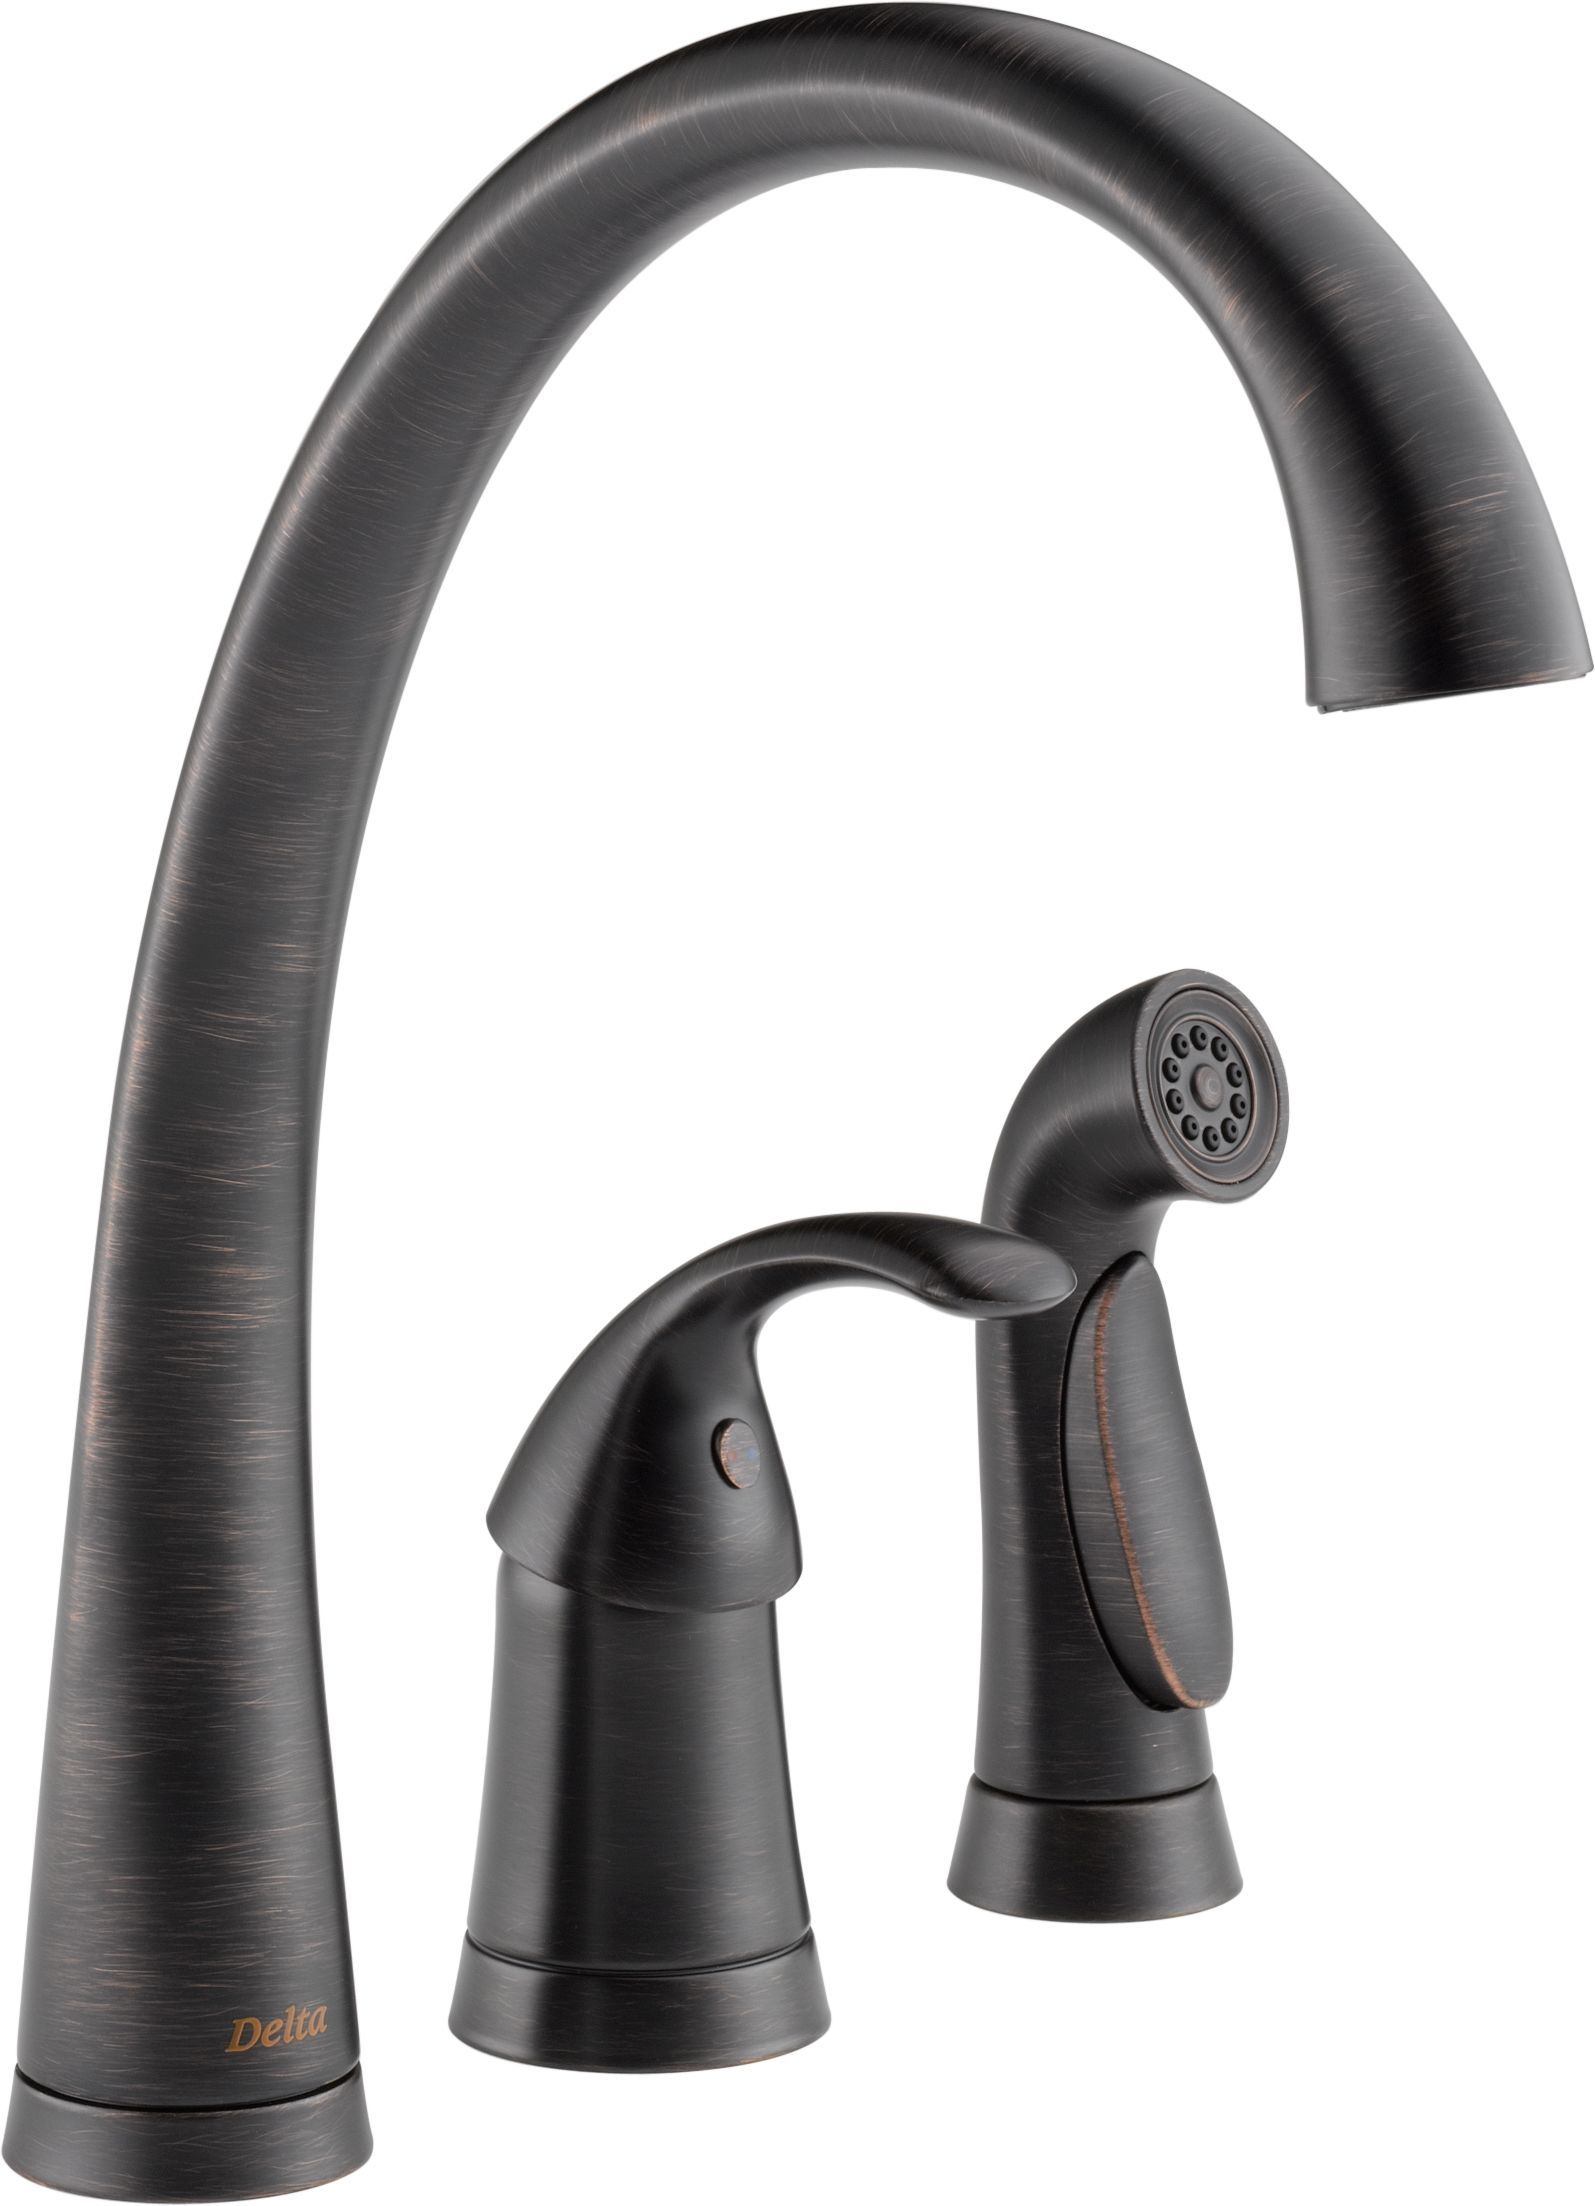 Delta 4380 AR DST Arctic Stainless Pilar Kitchen Faucet With Side Spray    Includes Lifetime Warranty   Faucet.com